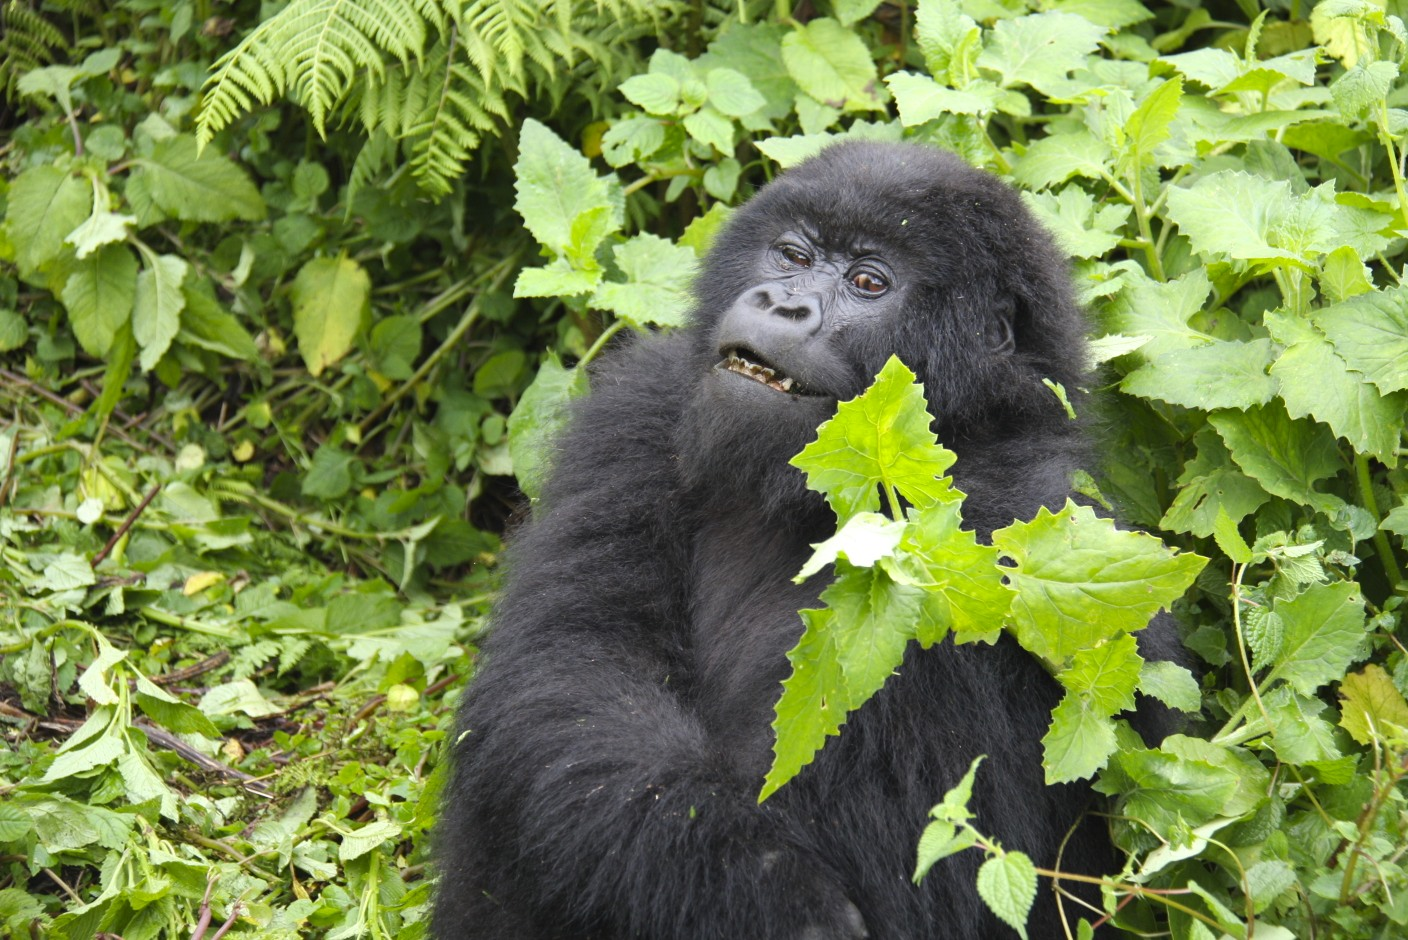 the mountain gorilla A mountain gorilla from the family of mountain gorillas named amahoro, which means peace in kinyarwanda, the rwandan language, forages for food high in a tree in the dense forest on the slopes.